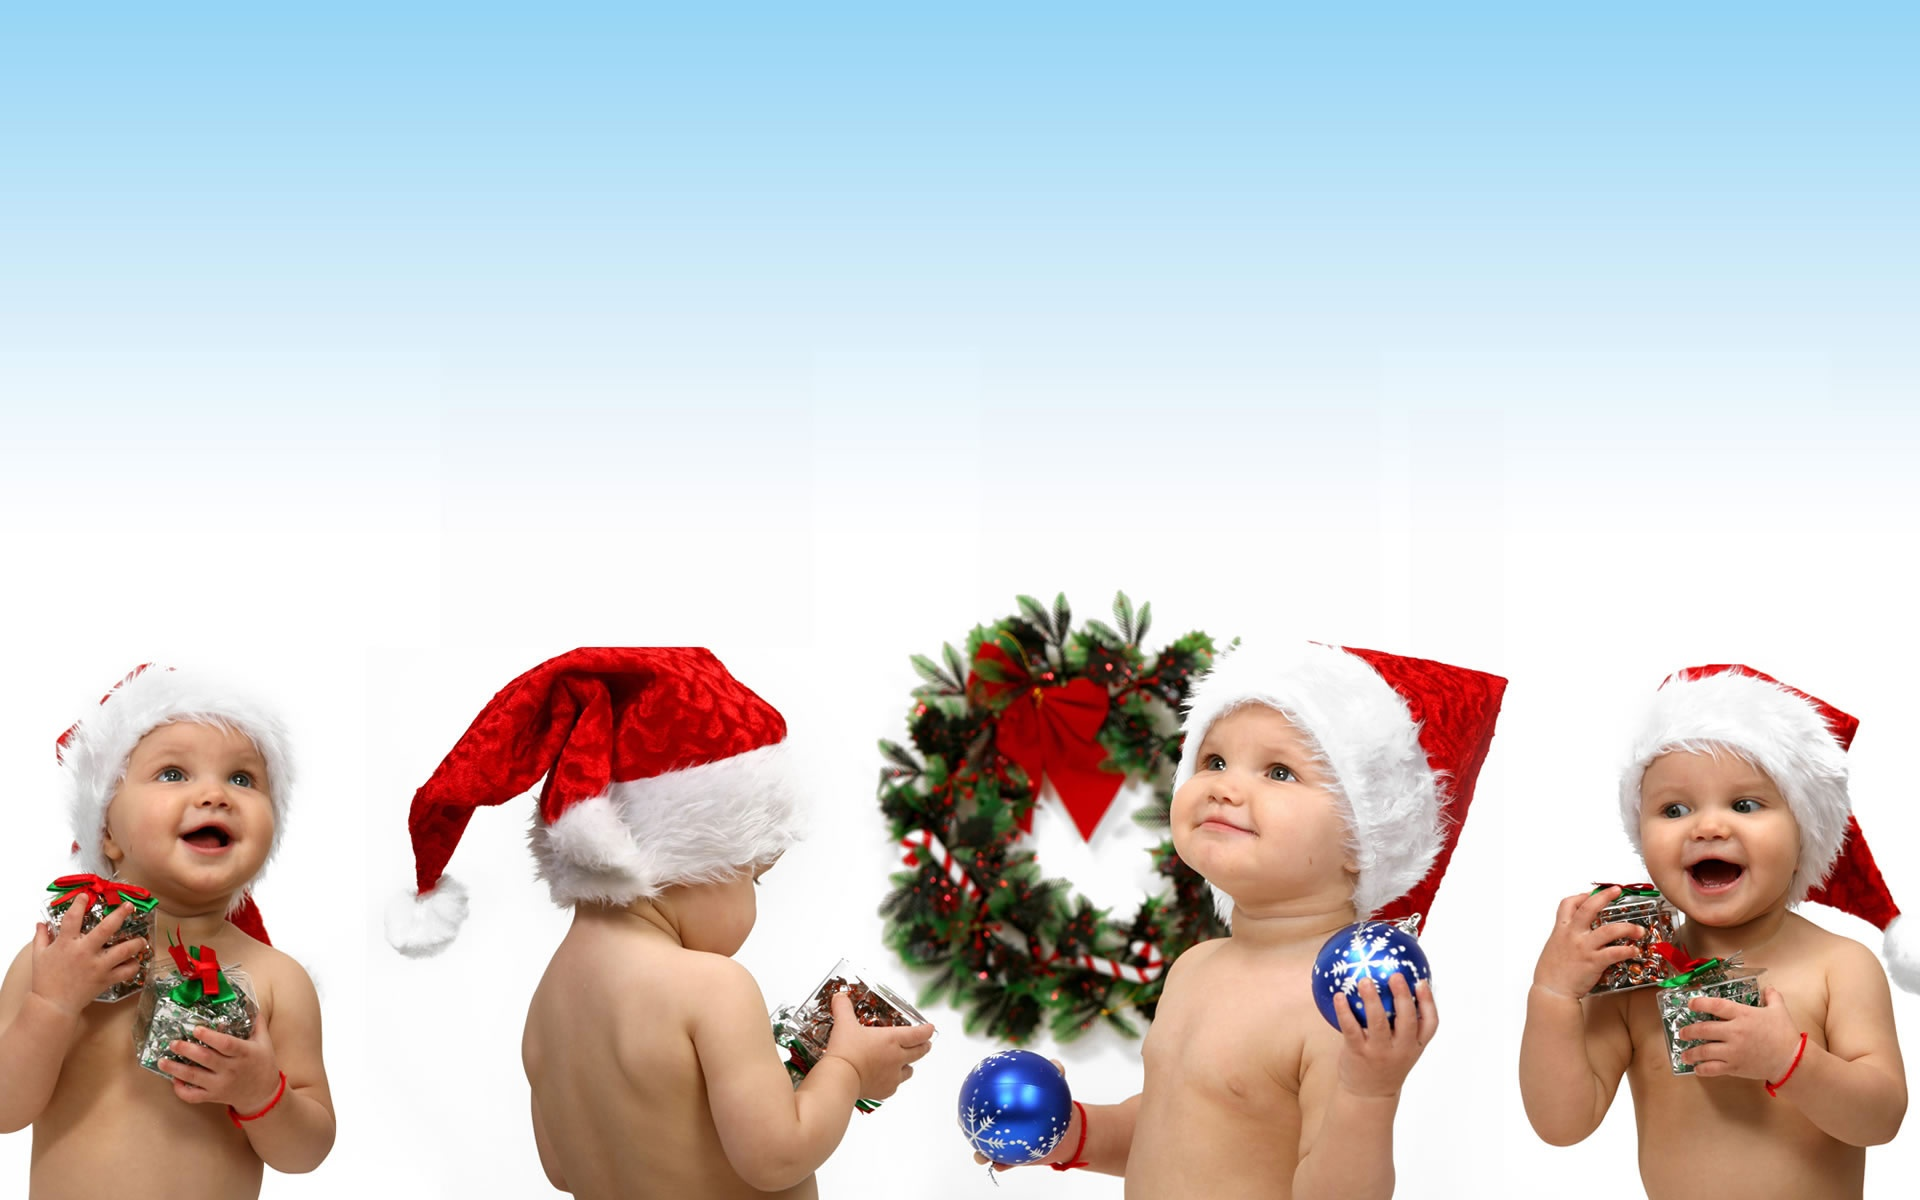 photo christmas backgrounds for children 2015 grasscloth wallpaper - Child Pictures Free